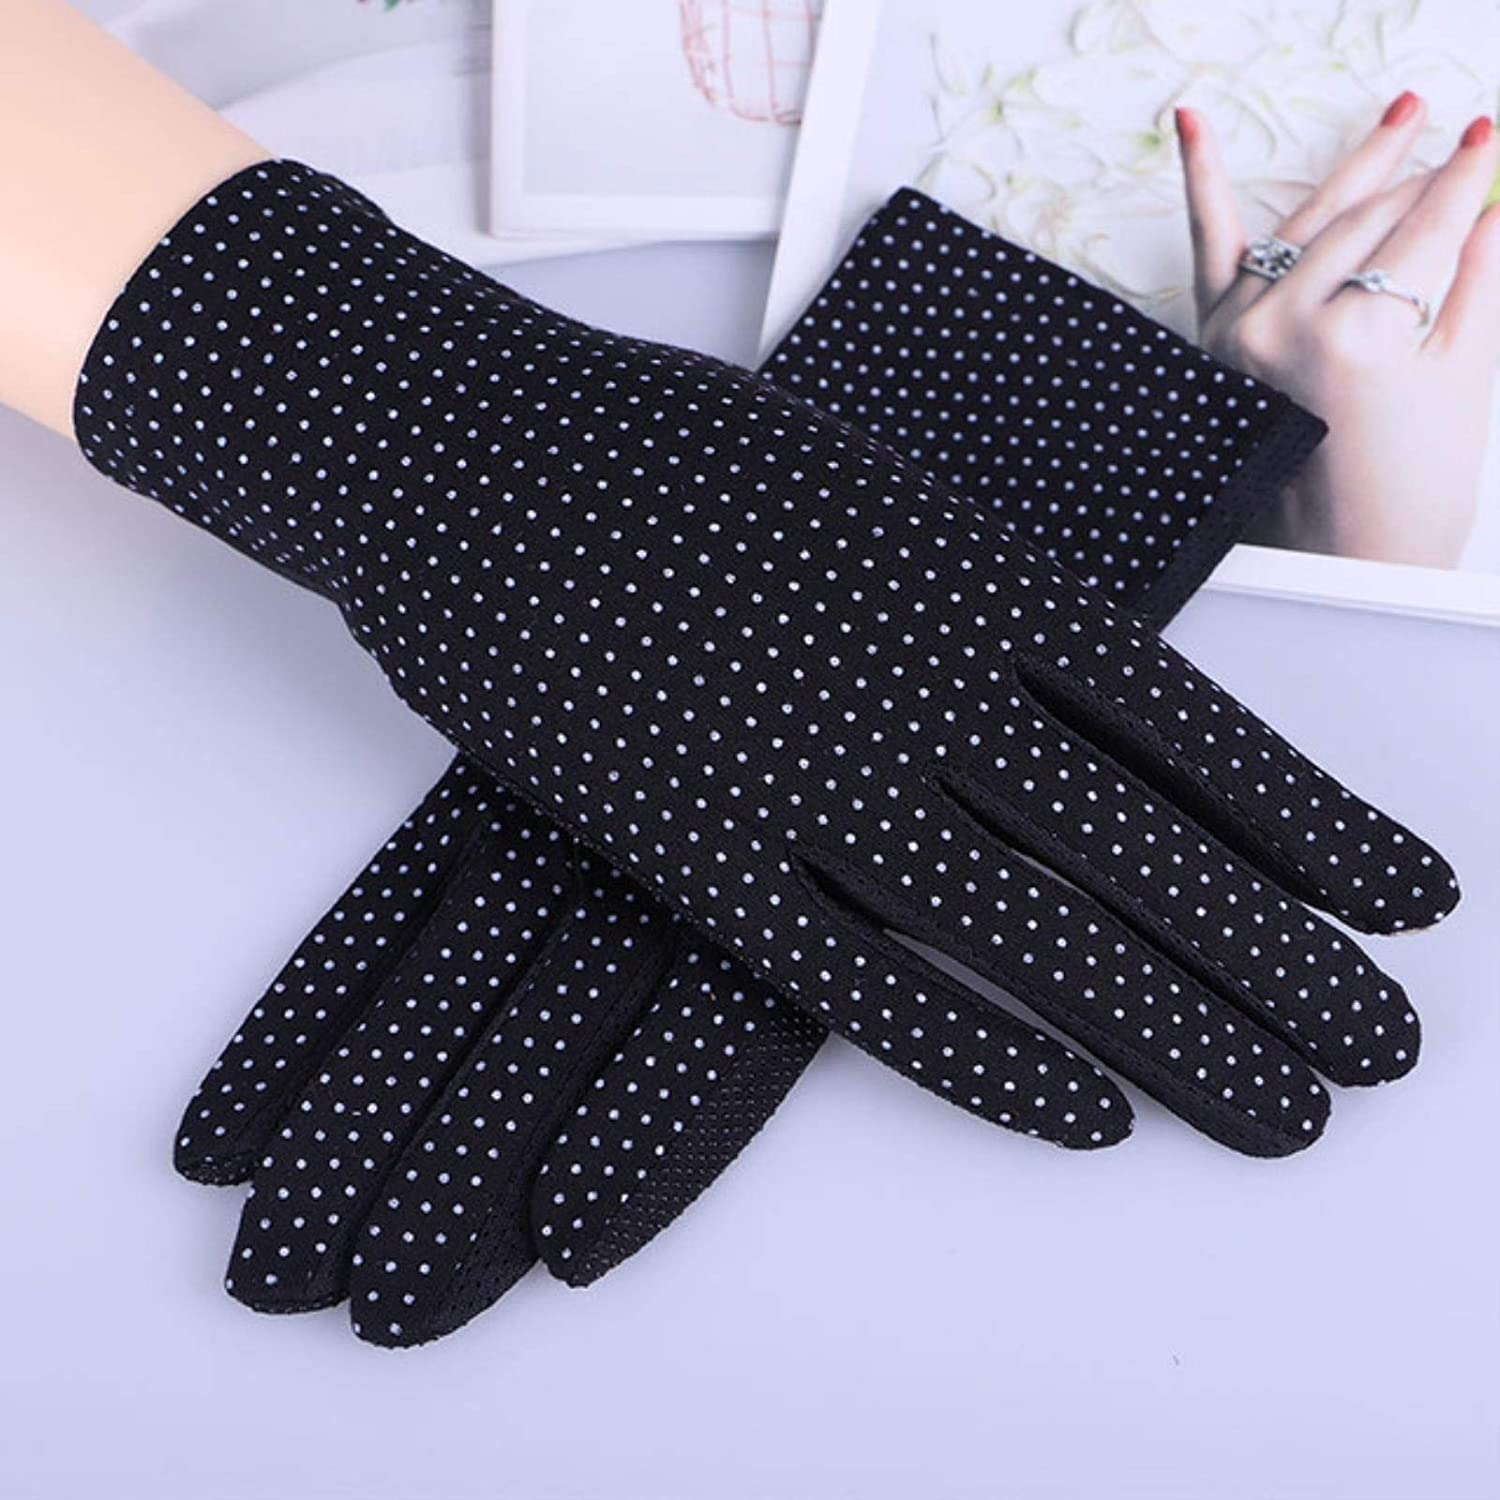 Spring Summer Driving Gloves Women Touch Screen Thin Cotton Gloves Lace UV Sun Against Non Slip Riding Car Gloves